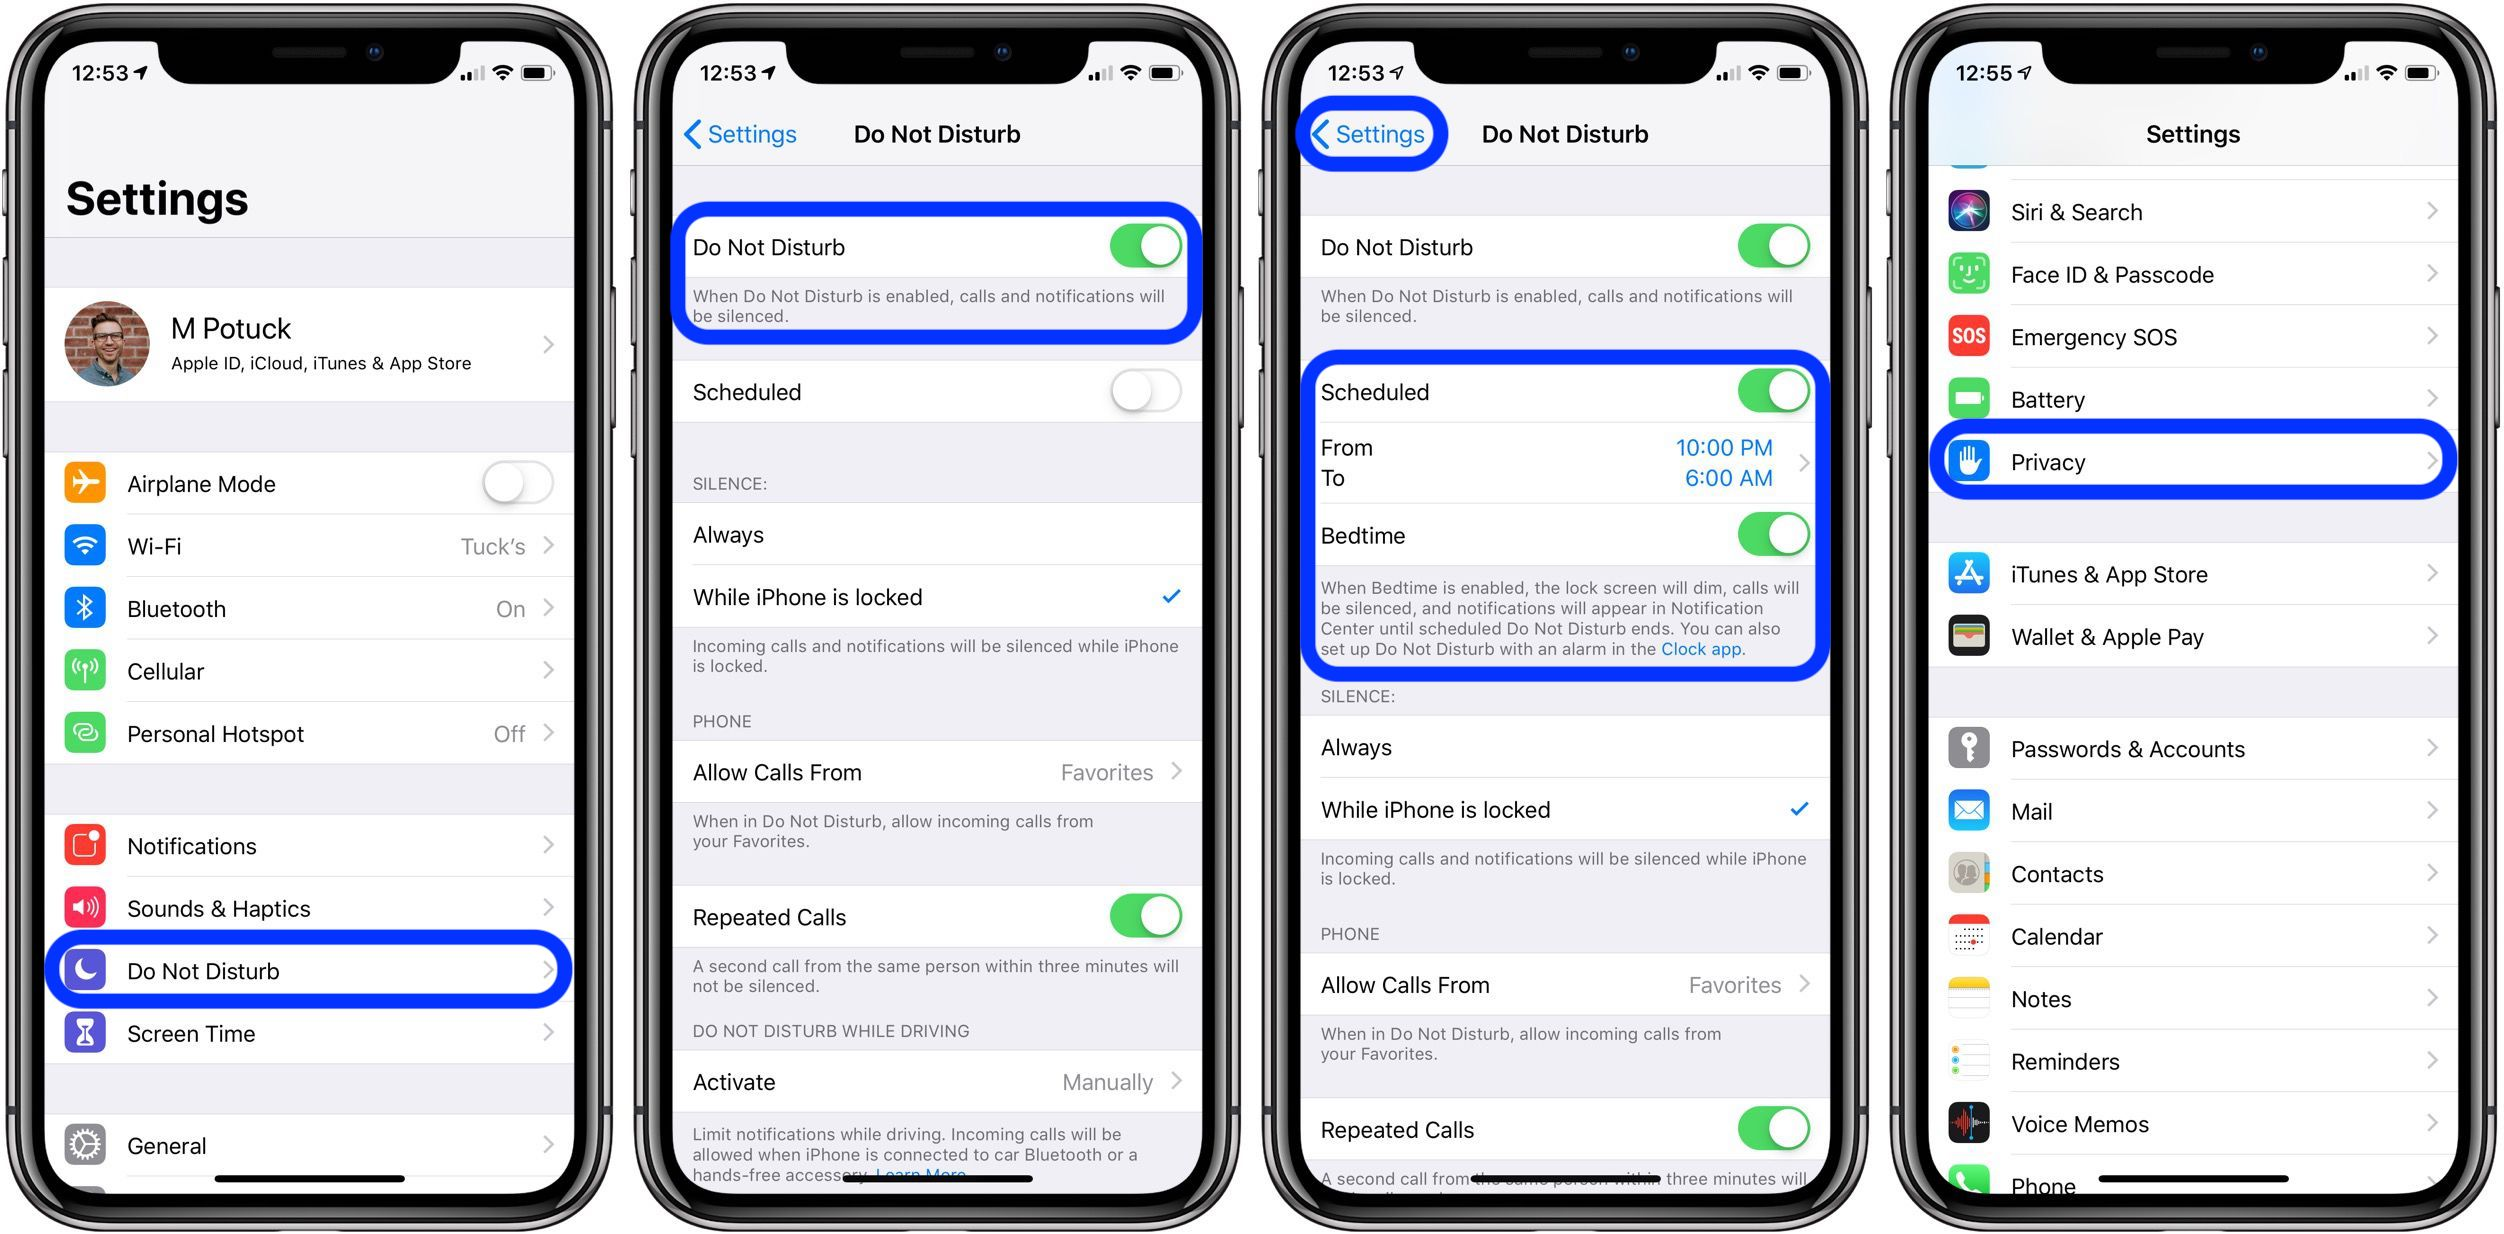 How to add weather summary to your iPhone Lock screen - 9to5Mac